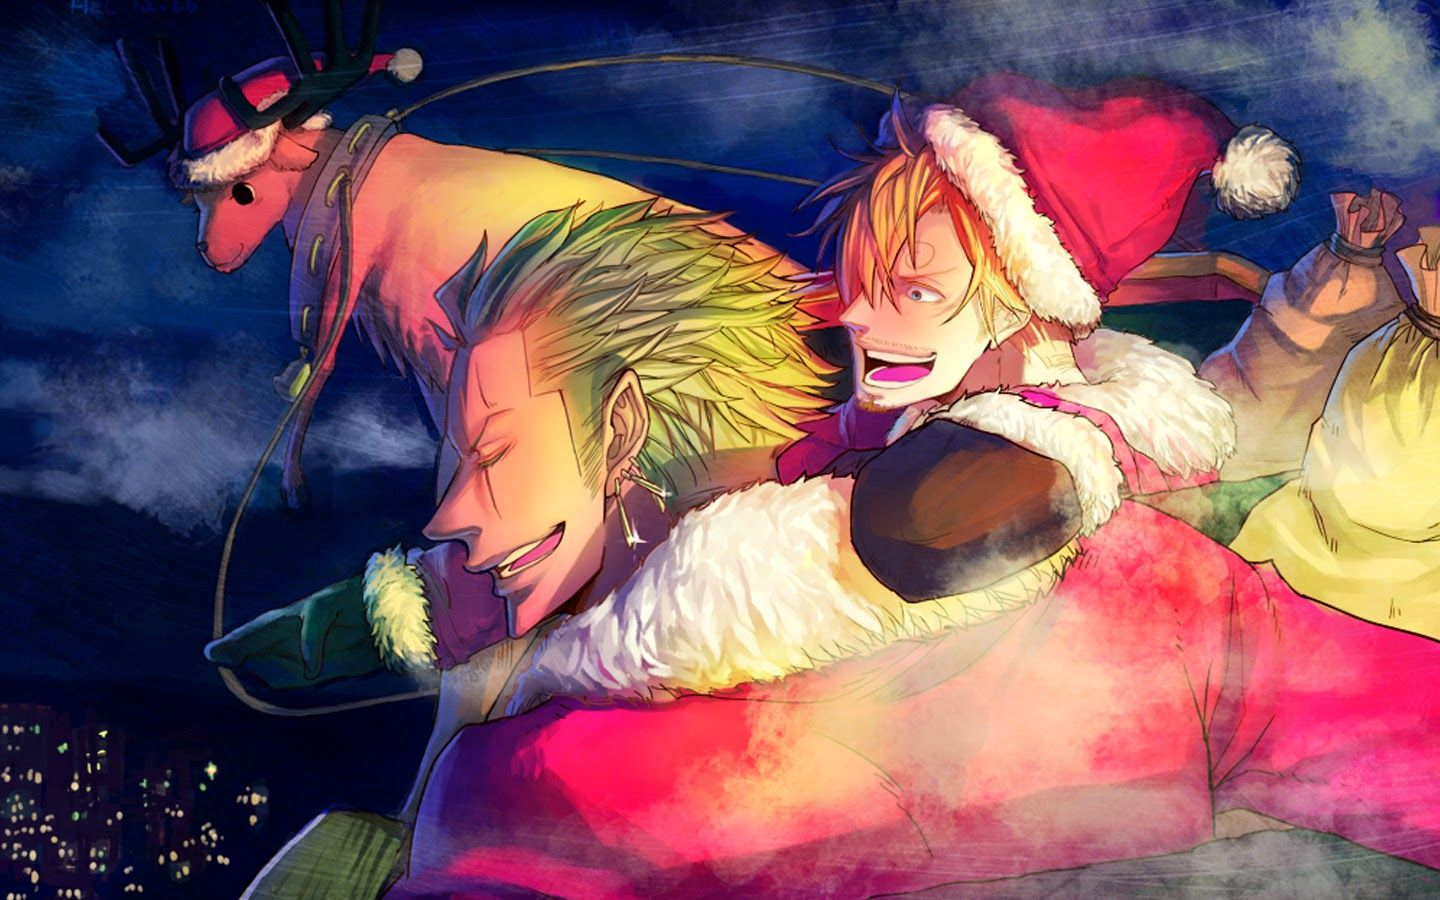 Alfa Img Showing Anime Santa Christmas Wallpapers One Piece Pictures One Piece Manga One Piece Anime